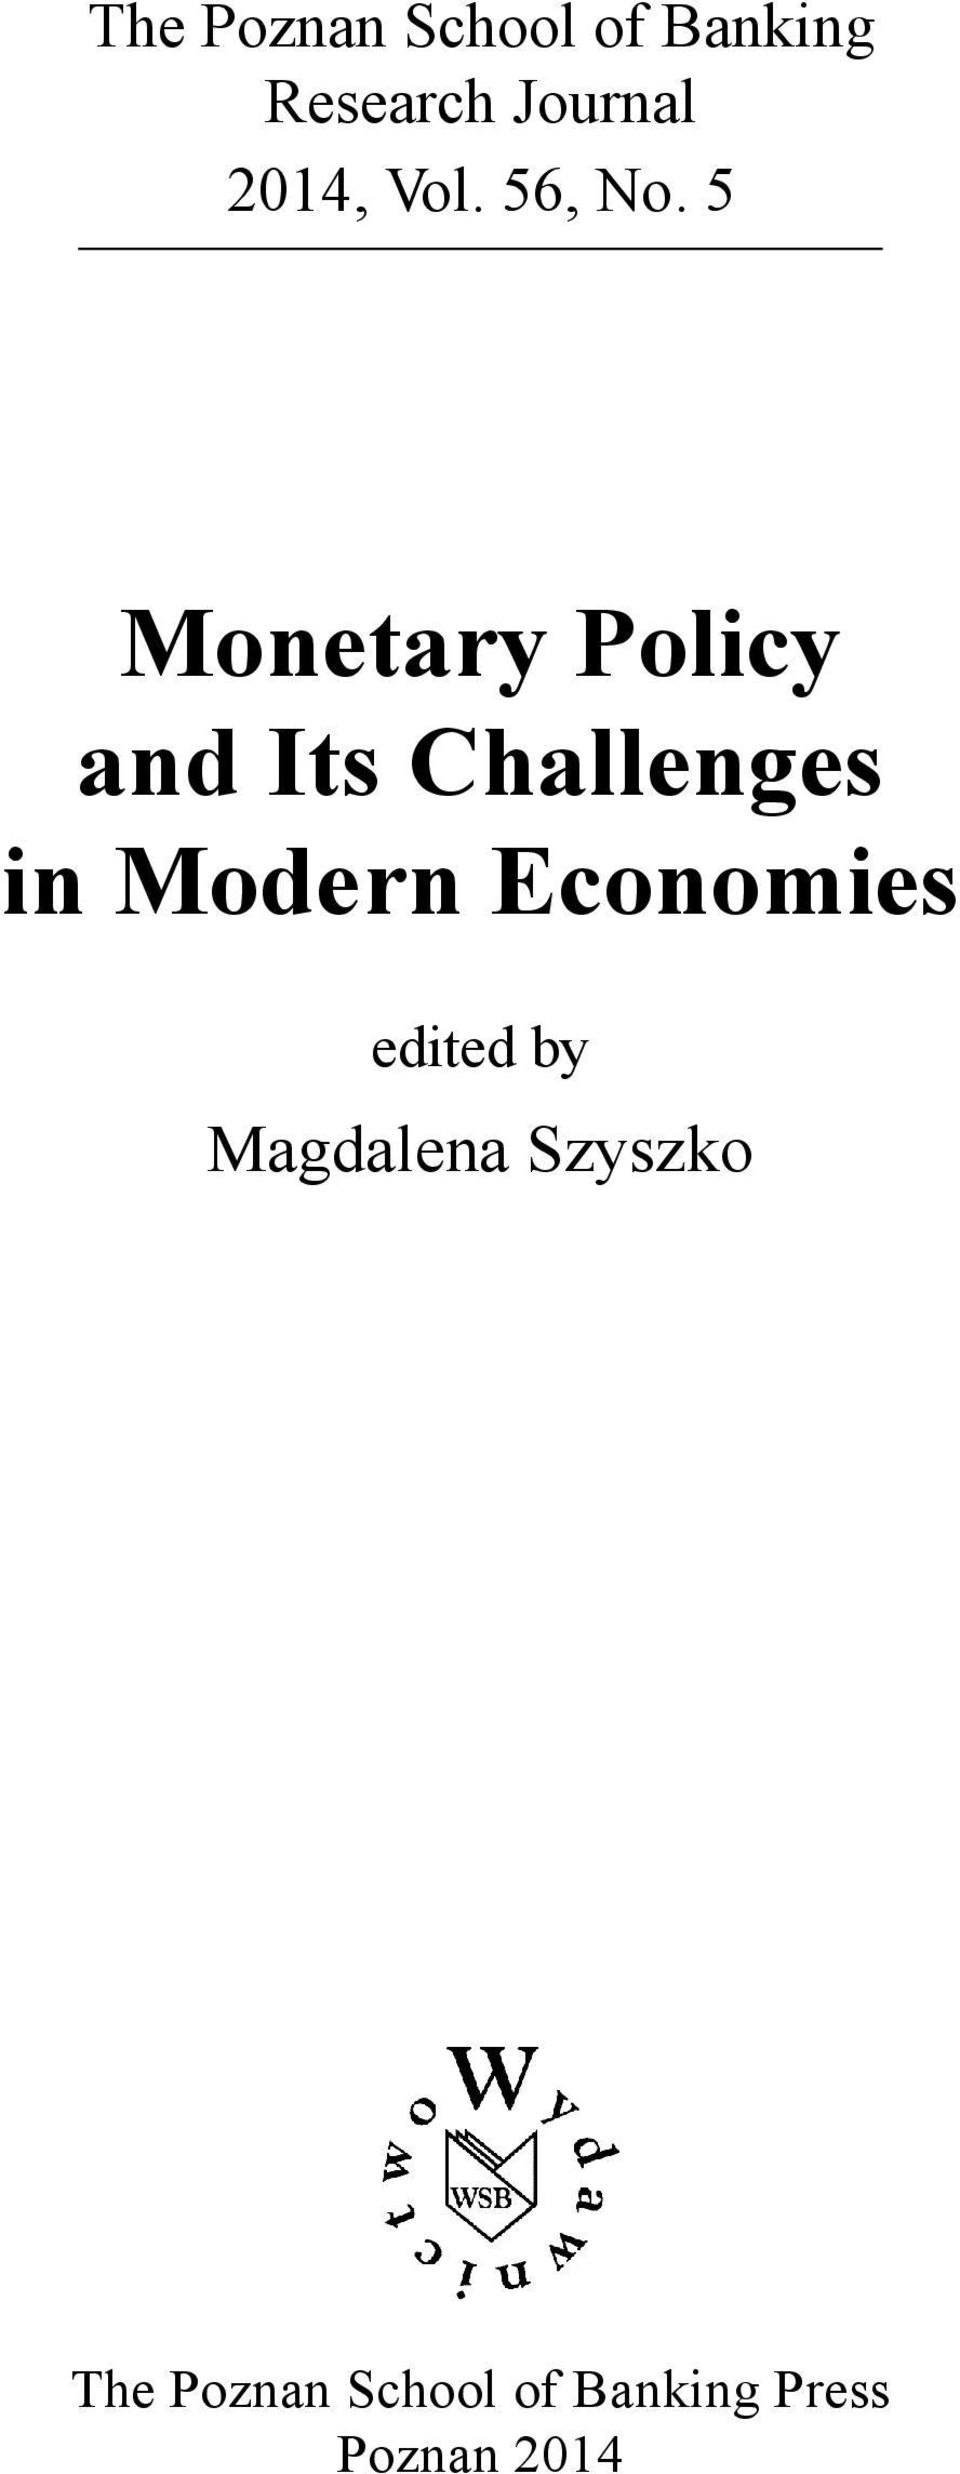 5(37)/2013 Business Monetary activity Policy in the and turbulent Its Challenges environment